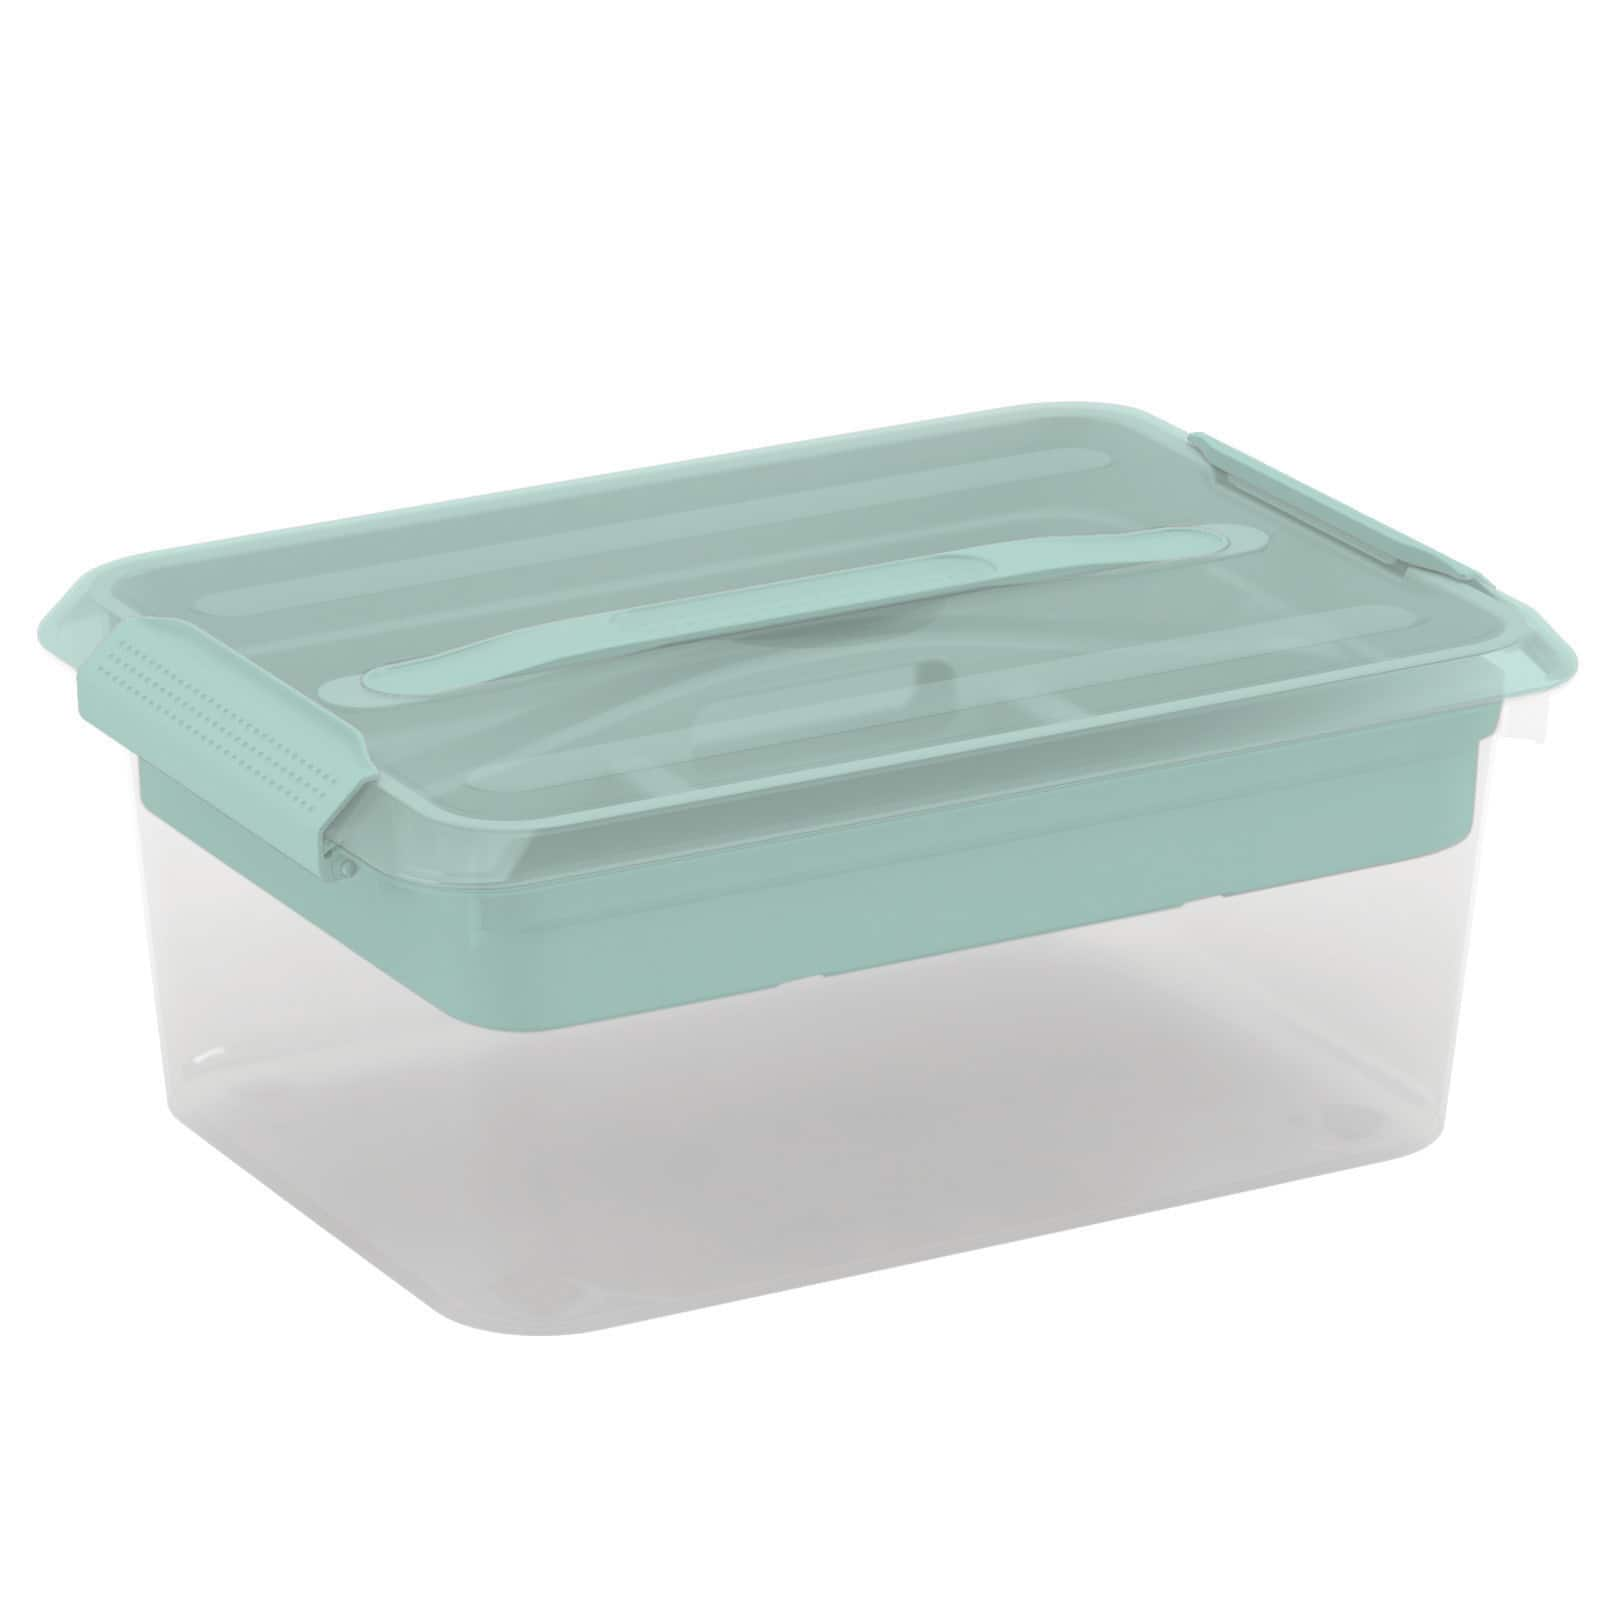 Shop For The Latchmate Turquoise Storage Box With Tray By Recollections™ At  Michaels